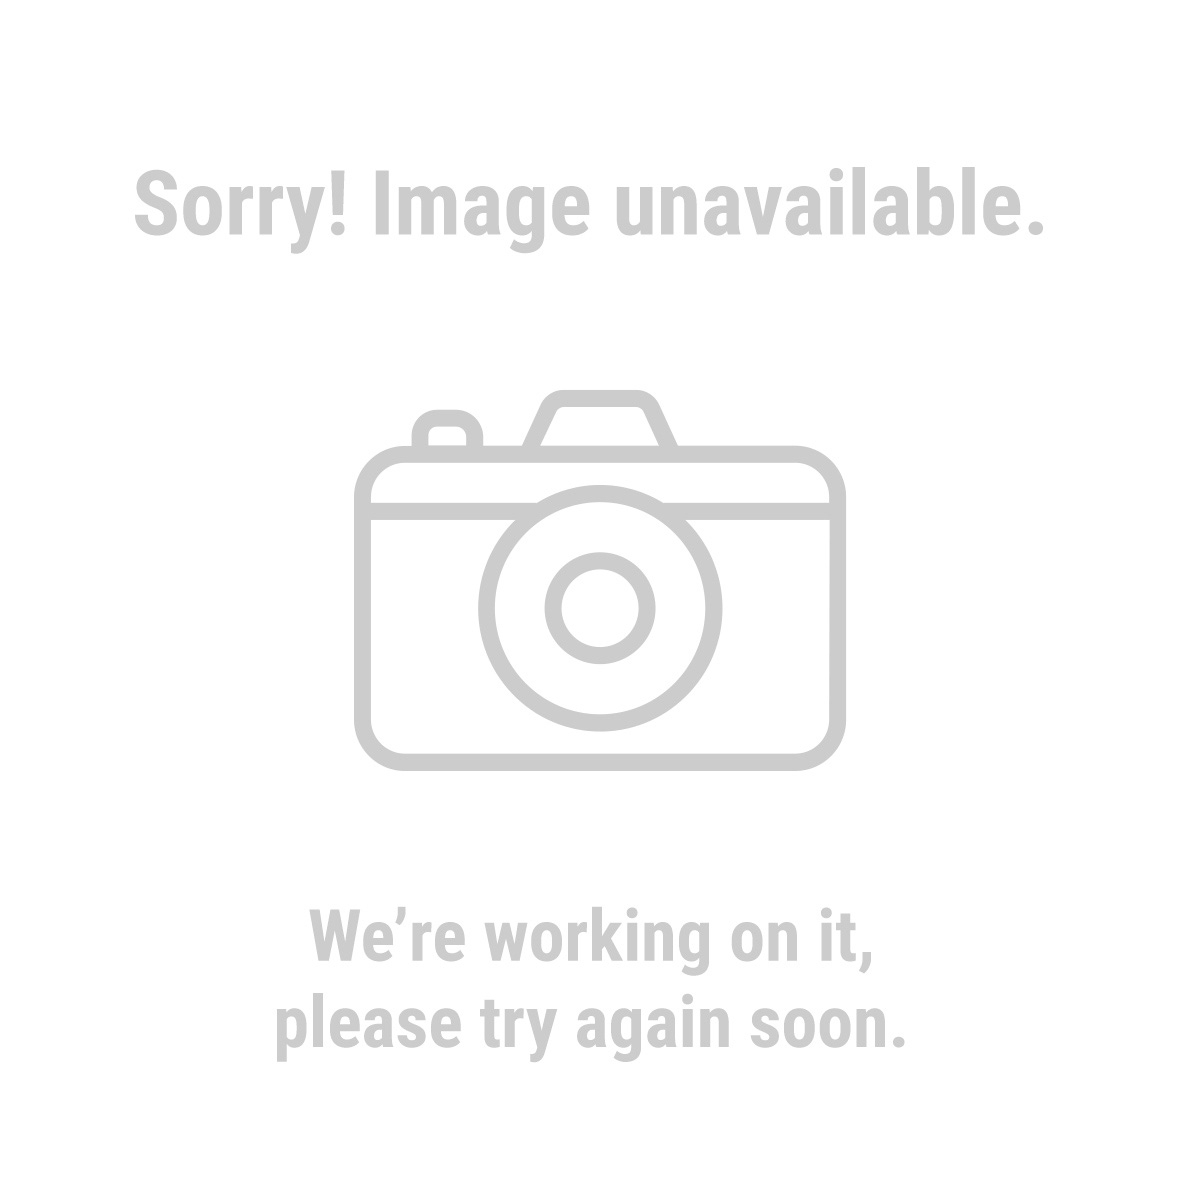 Chicago Electric Power Tools 95563 2.5 Liter Ultrasonic Cleaner